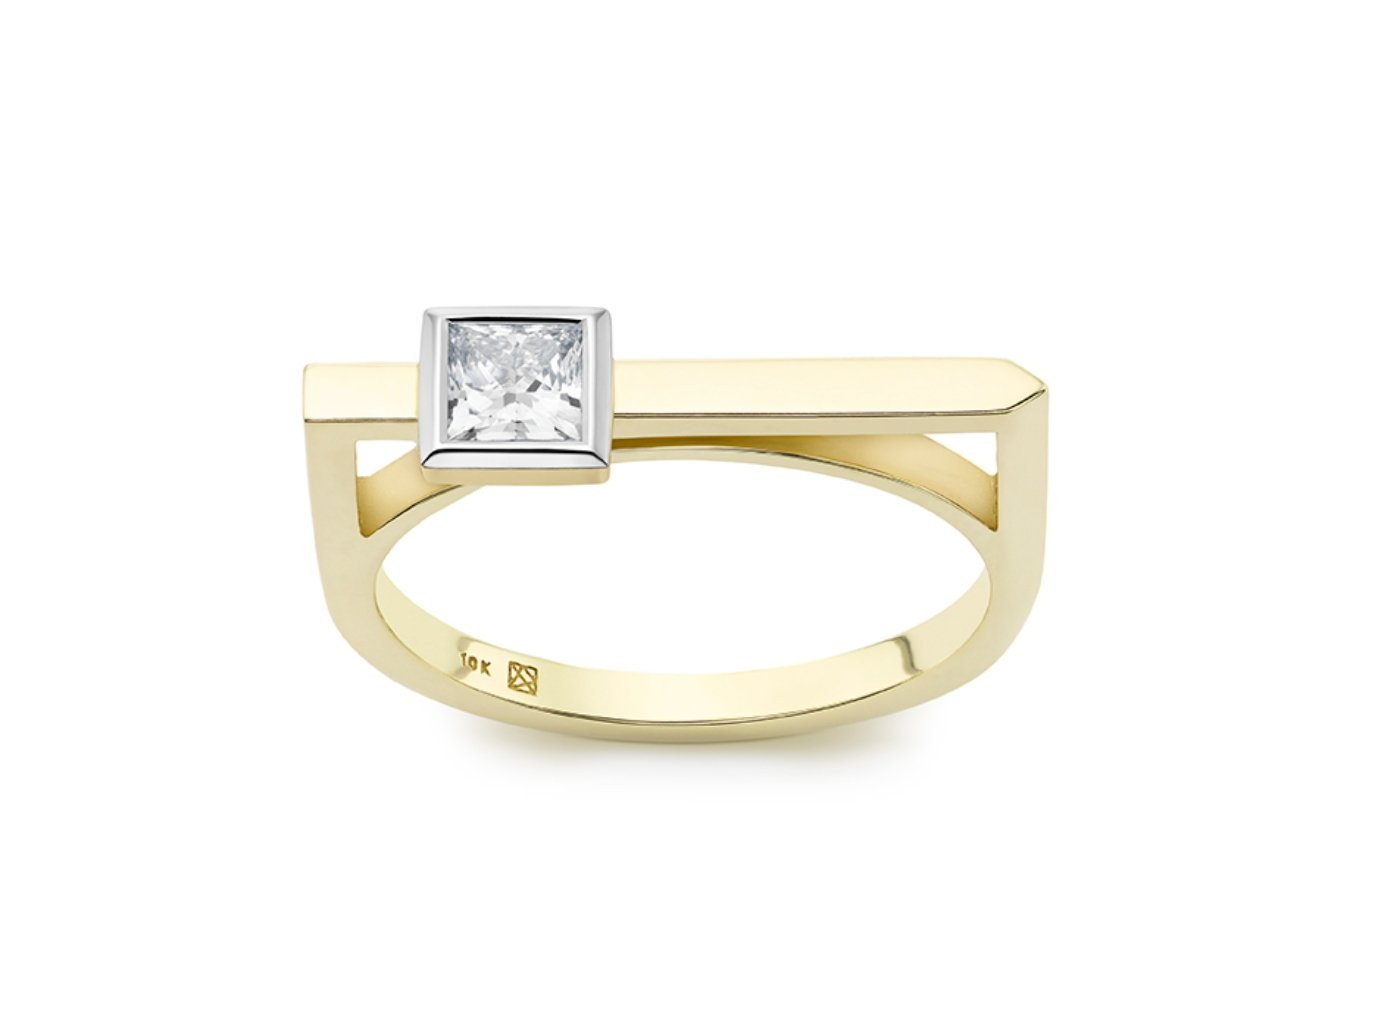 Front view of Princess linear 3/8 carat ring with white diamond